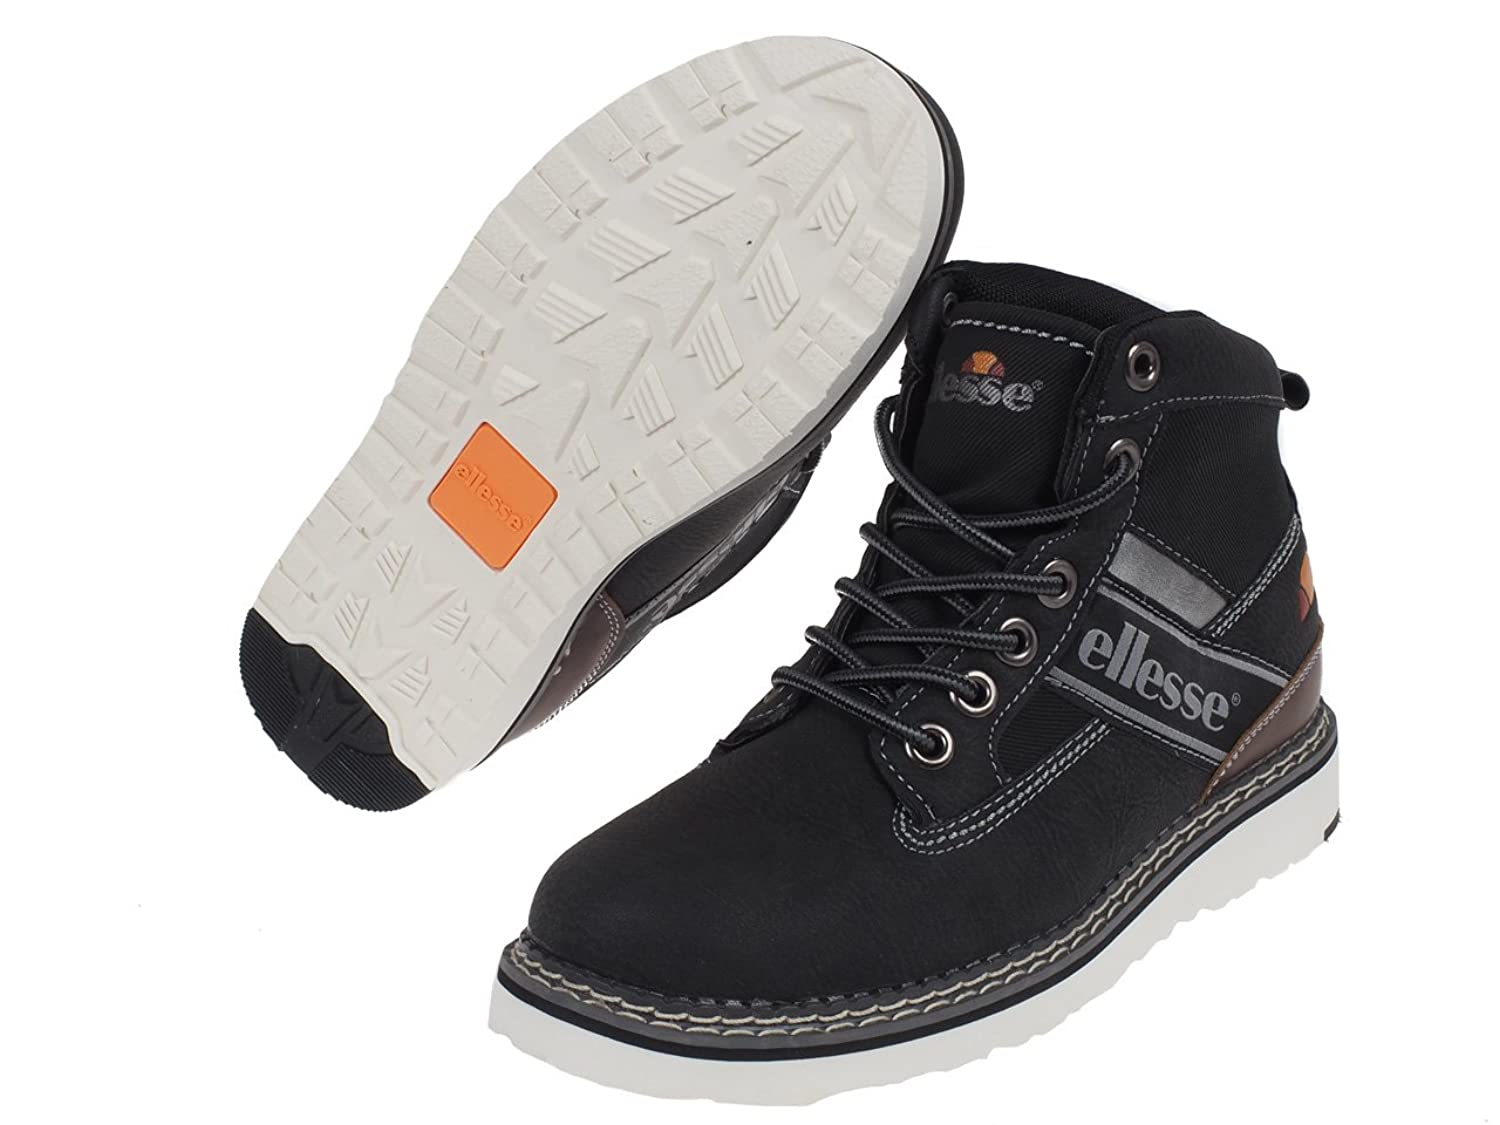 Technical Ellesse Chaussures Chaussures chaussures Technical Chaussures Technical Technical Ellesse chaussures 6gbfY7y